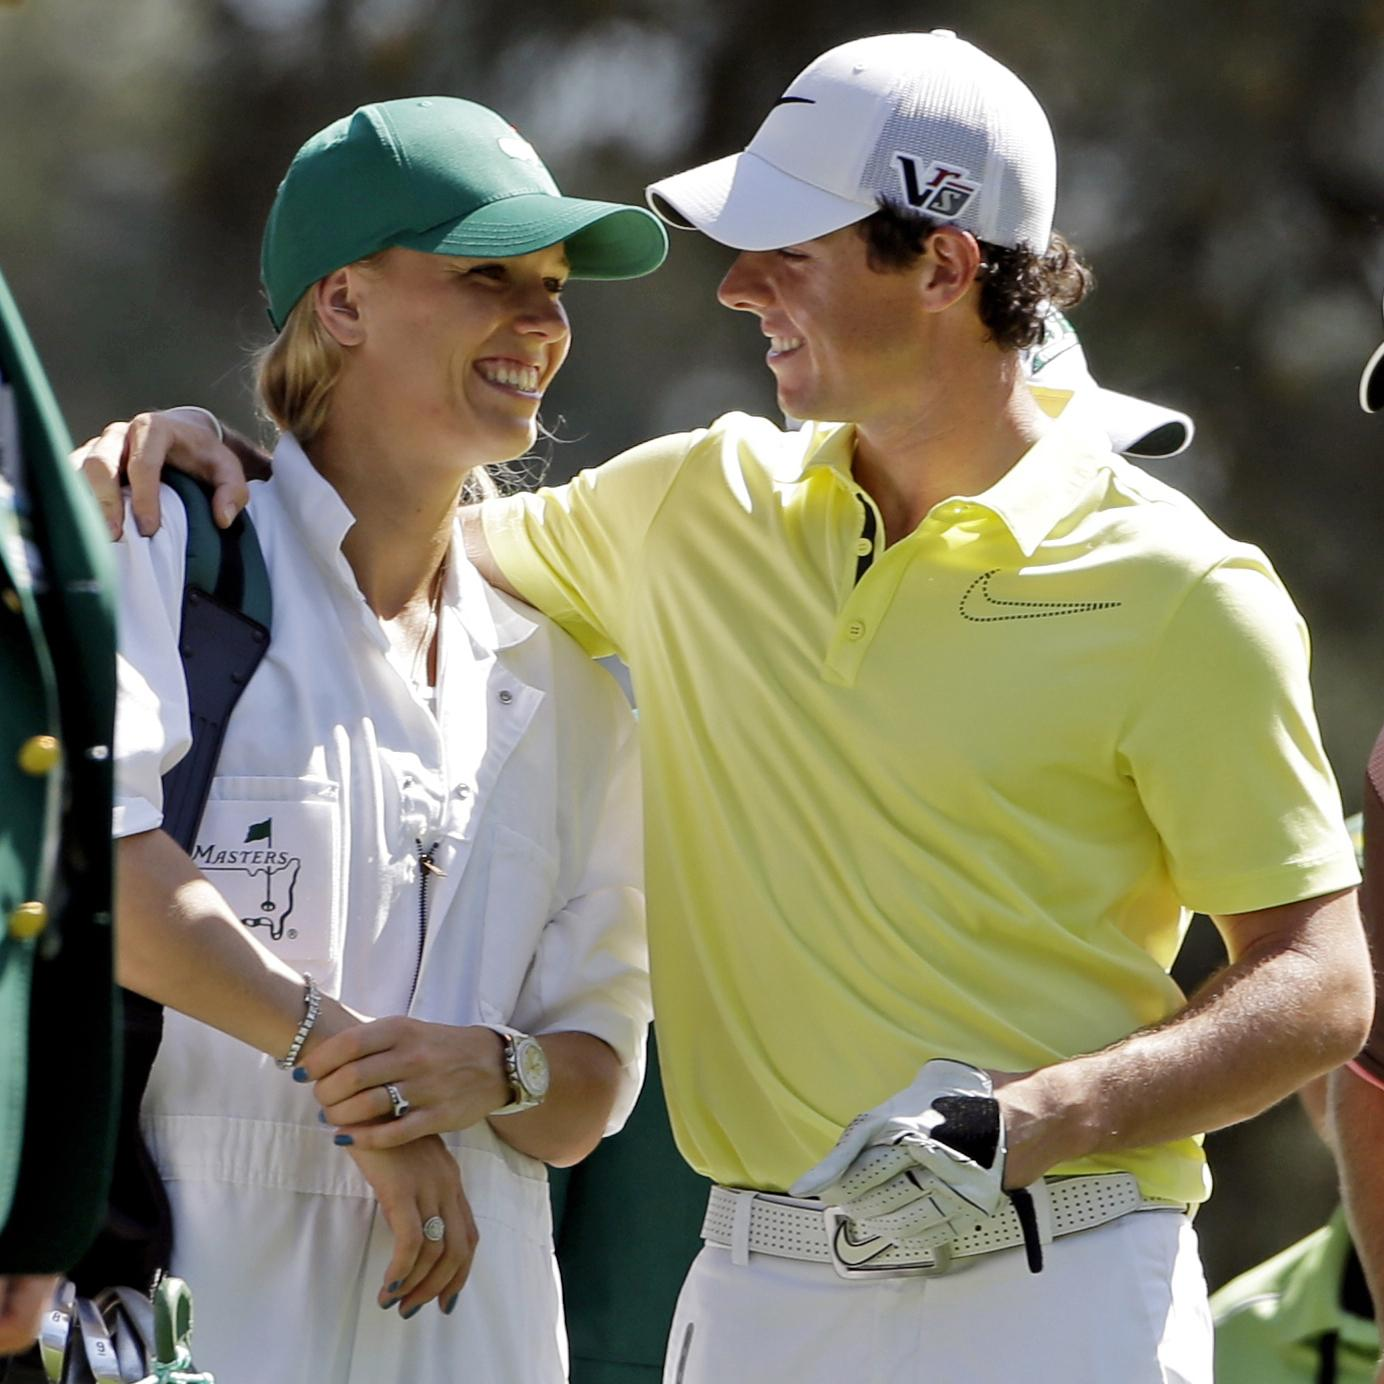 Rory McIlroy called off his engagement to Caroline Wozniacki, saying he wasn't ready